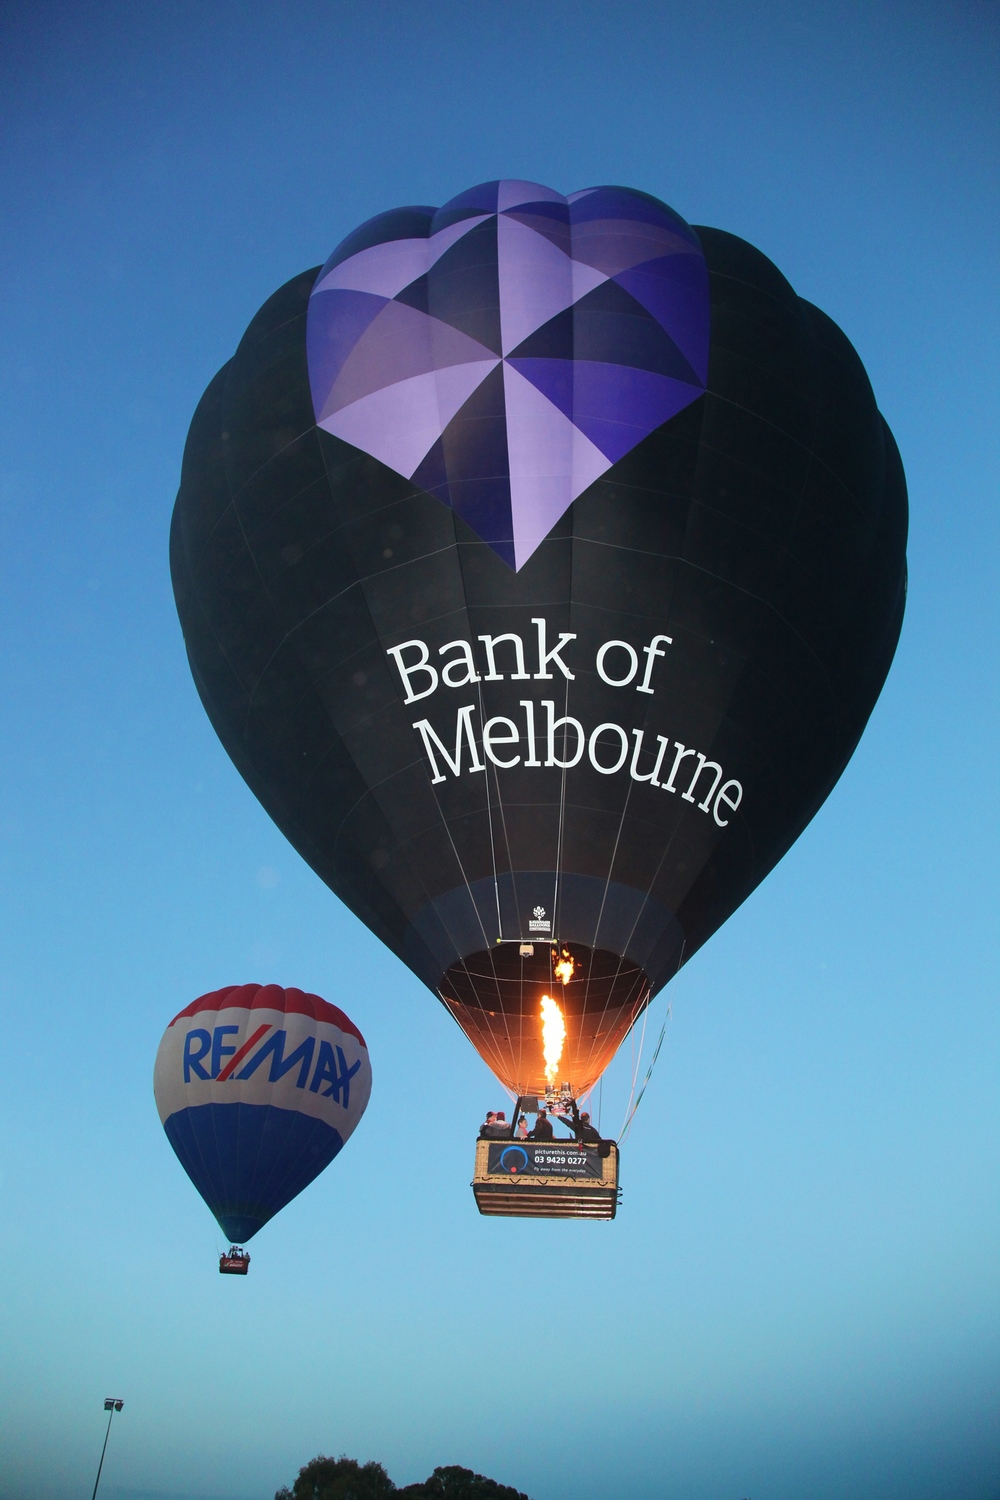 Our Bank of Melbourne passenger balloon that regularly flies over Melbourne CBD.